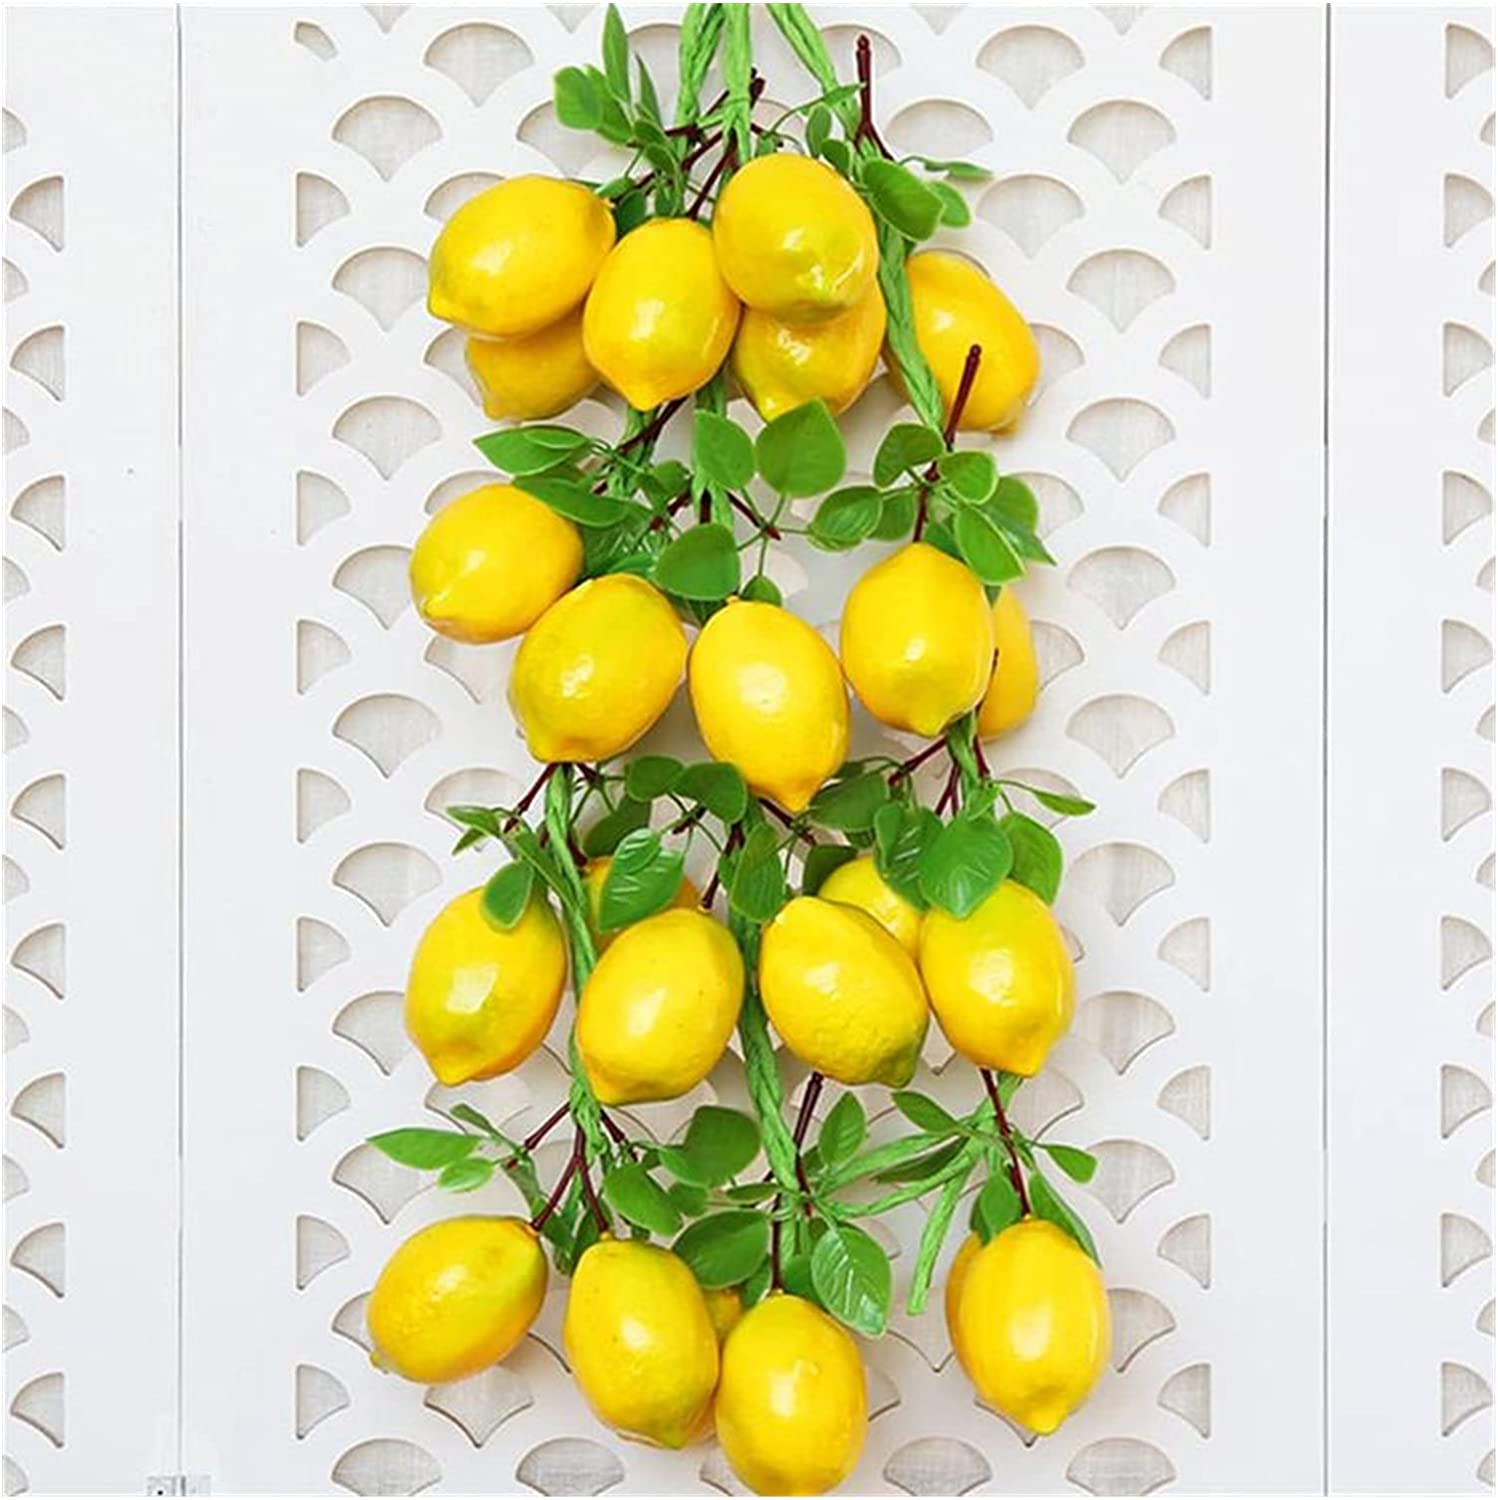 JSJJEDC Artificial Fruit 2 Max 74% OFF Bunches Ar Simulation of String Lemon Max 78% OFF